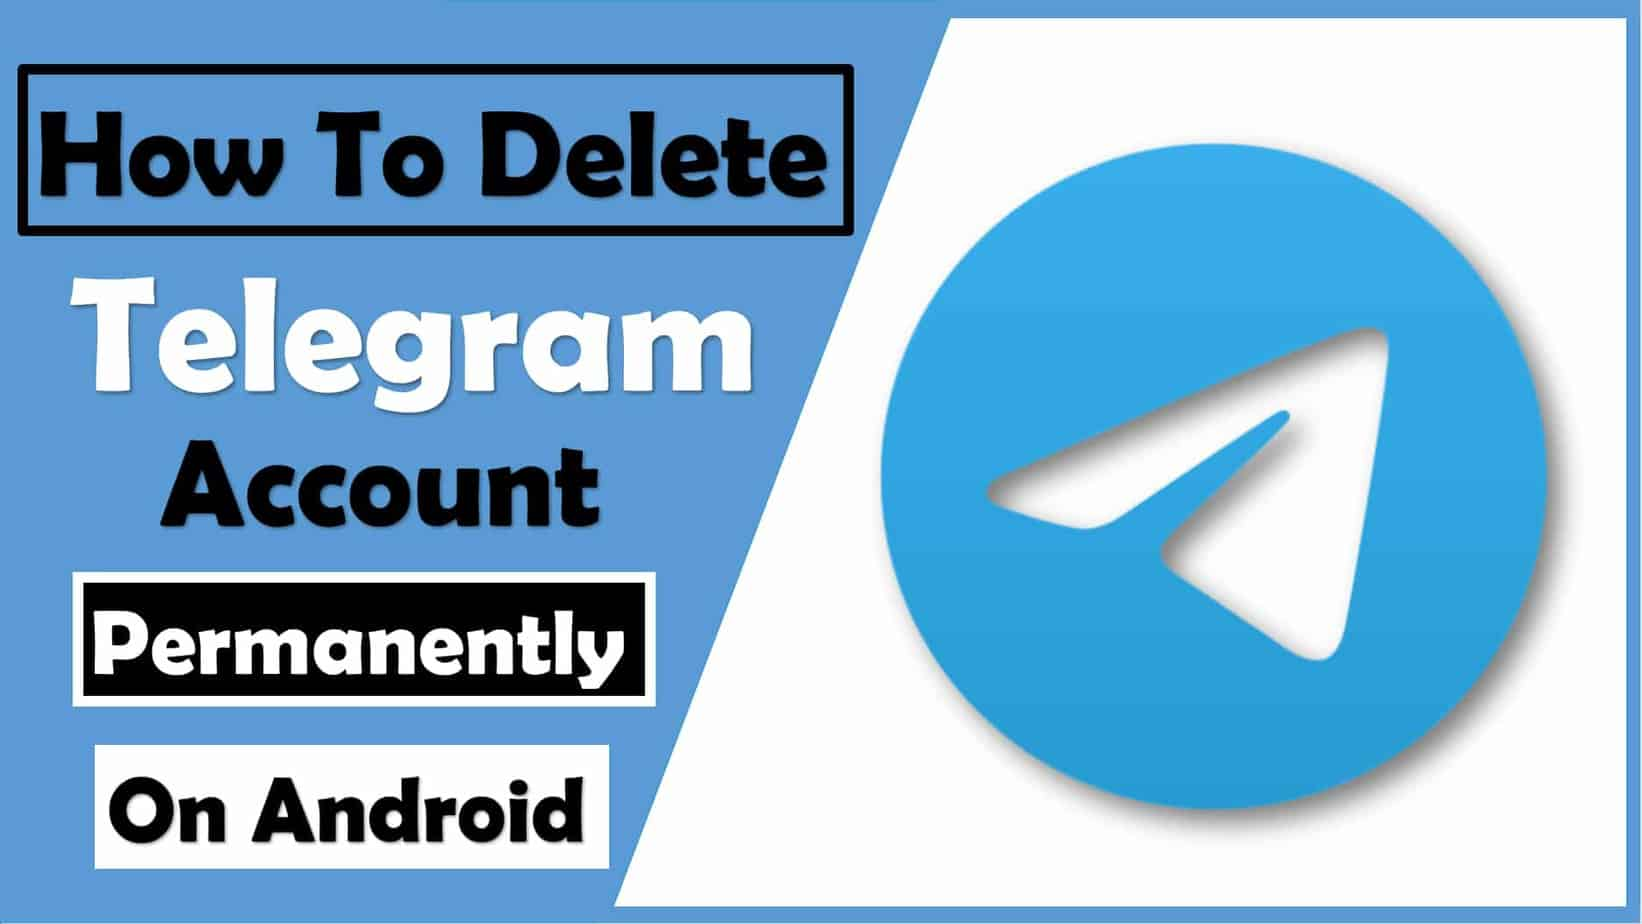 How To Delete Telegram Account Permanently On Android